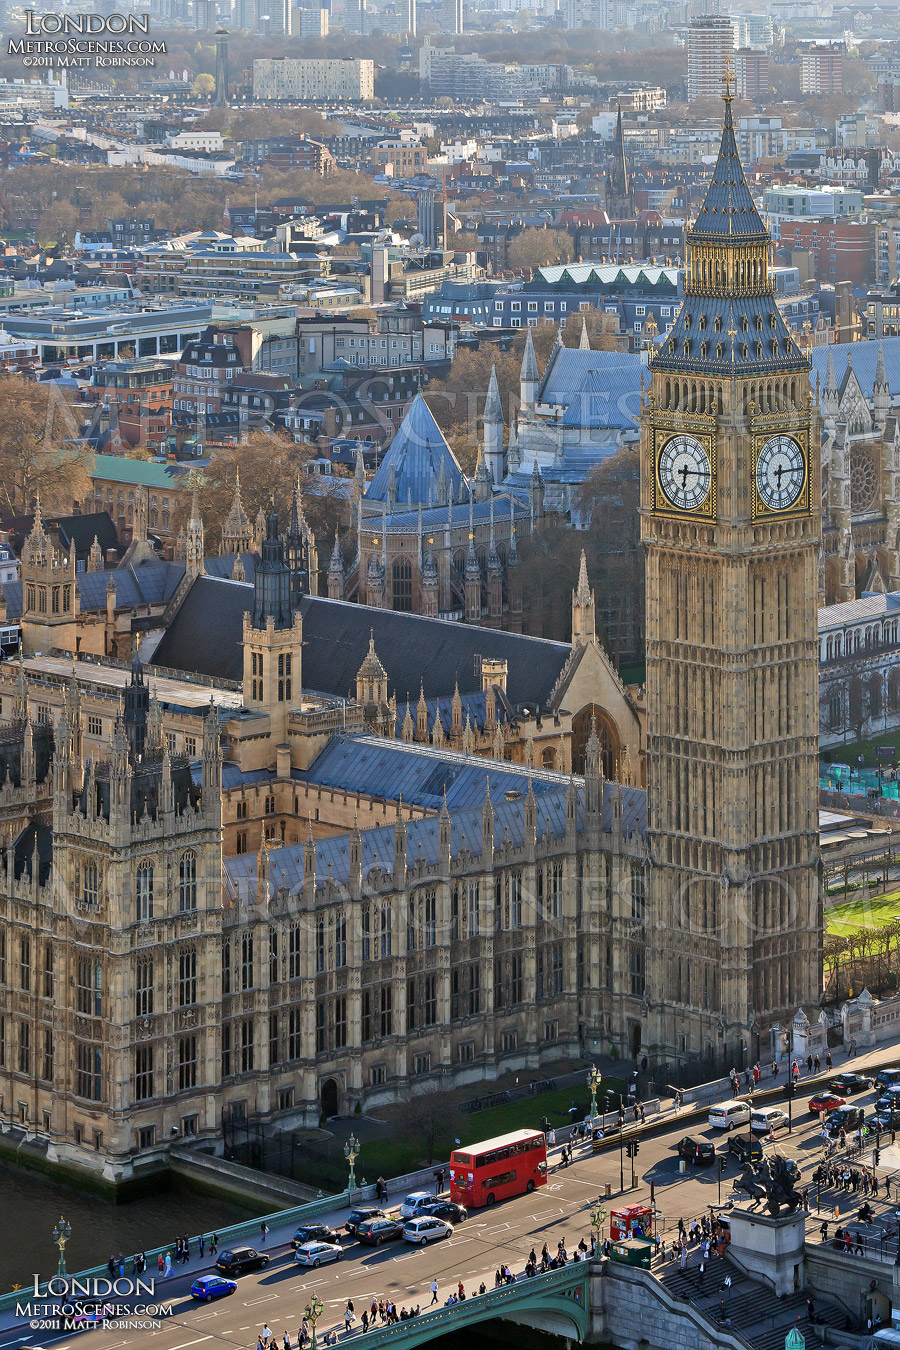 Palace of Westminster with Big Ben from the London Eye